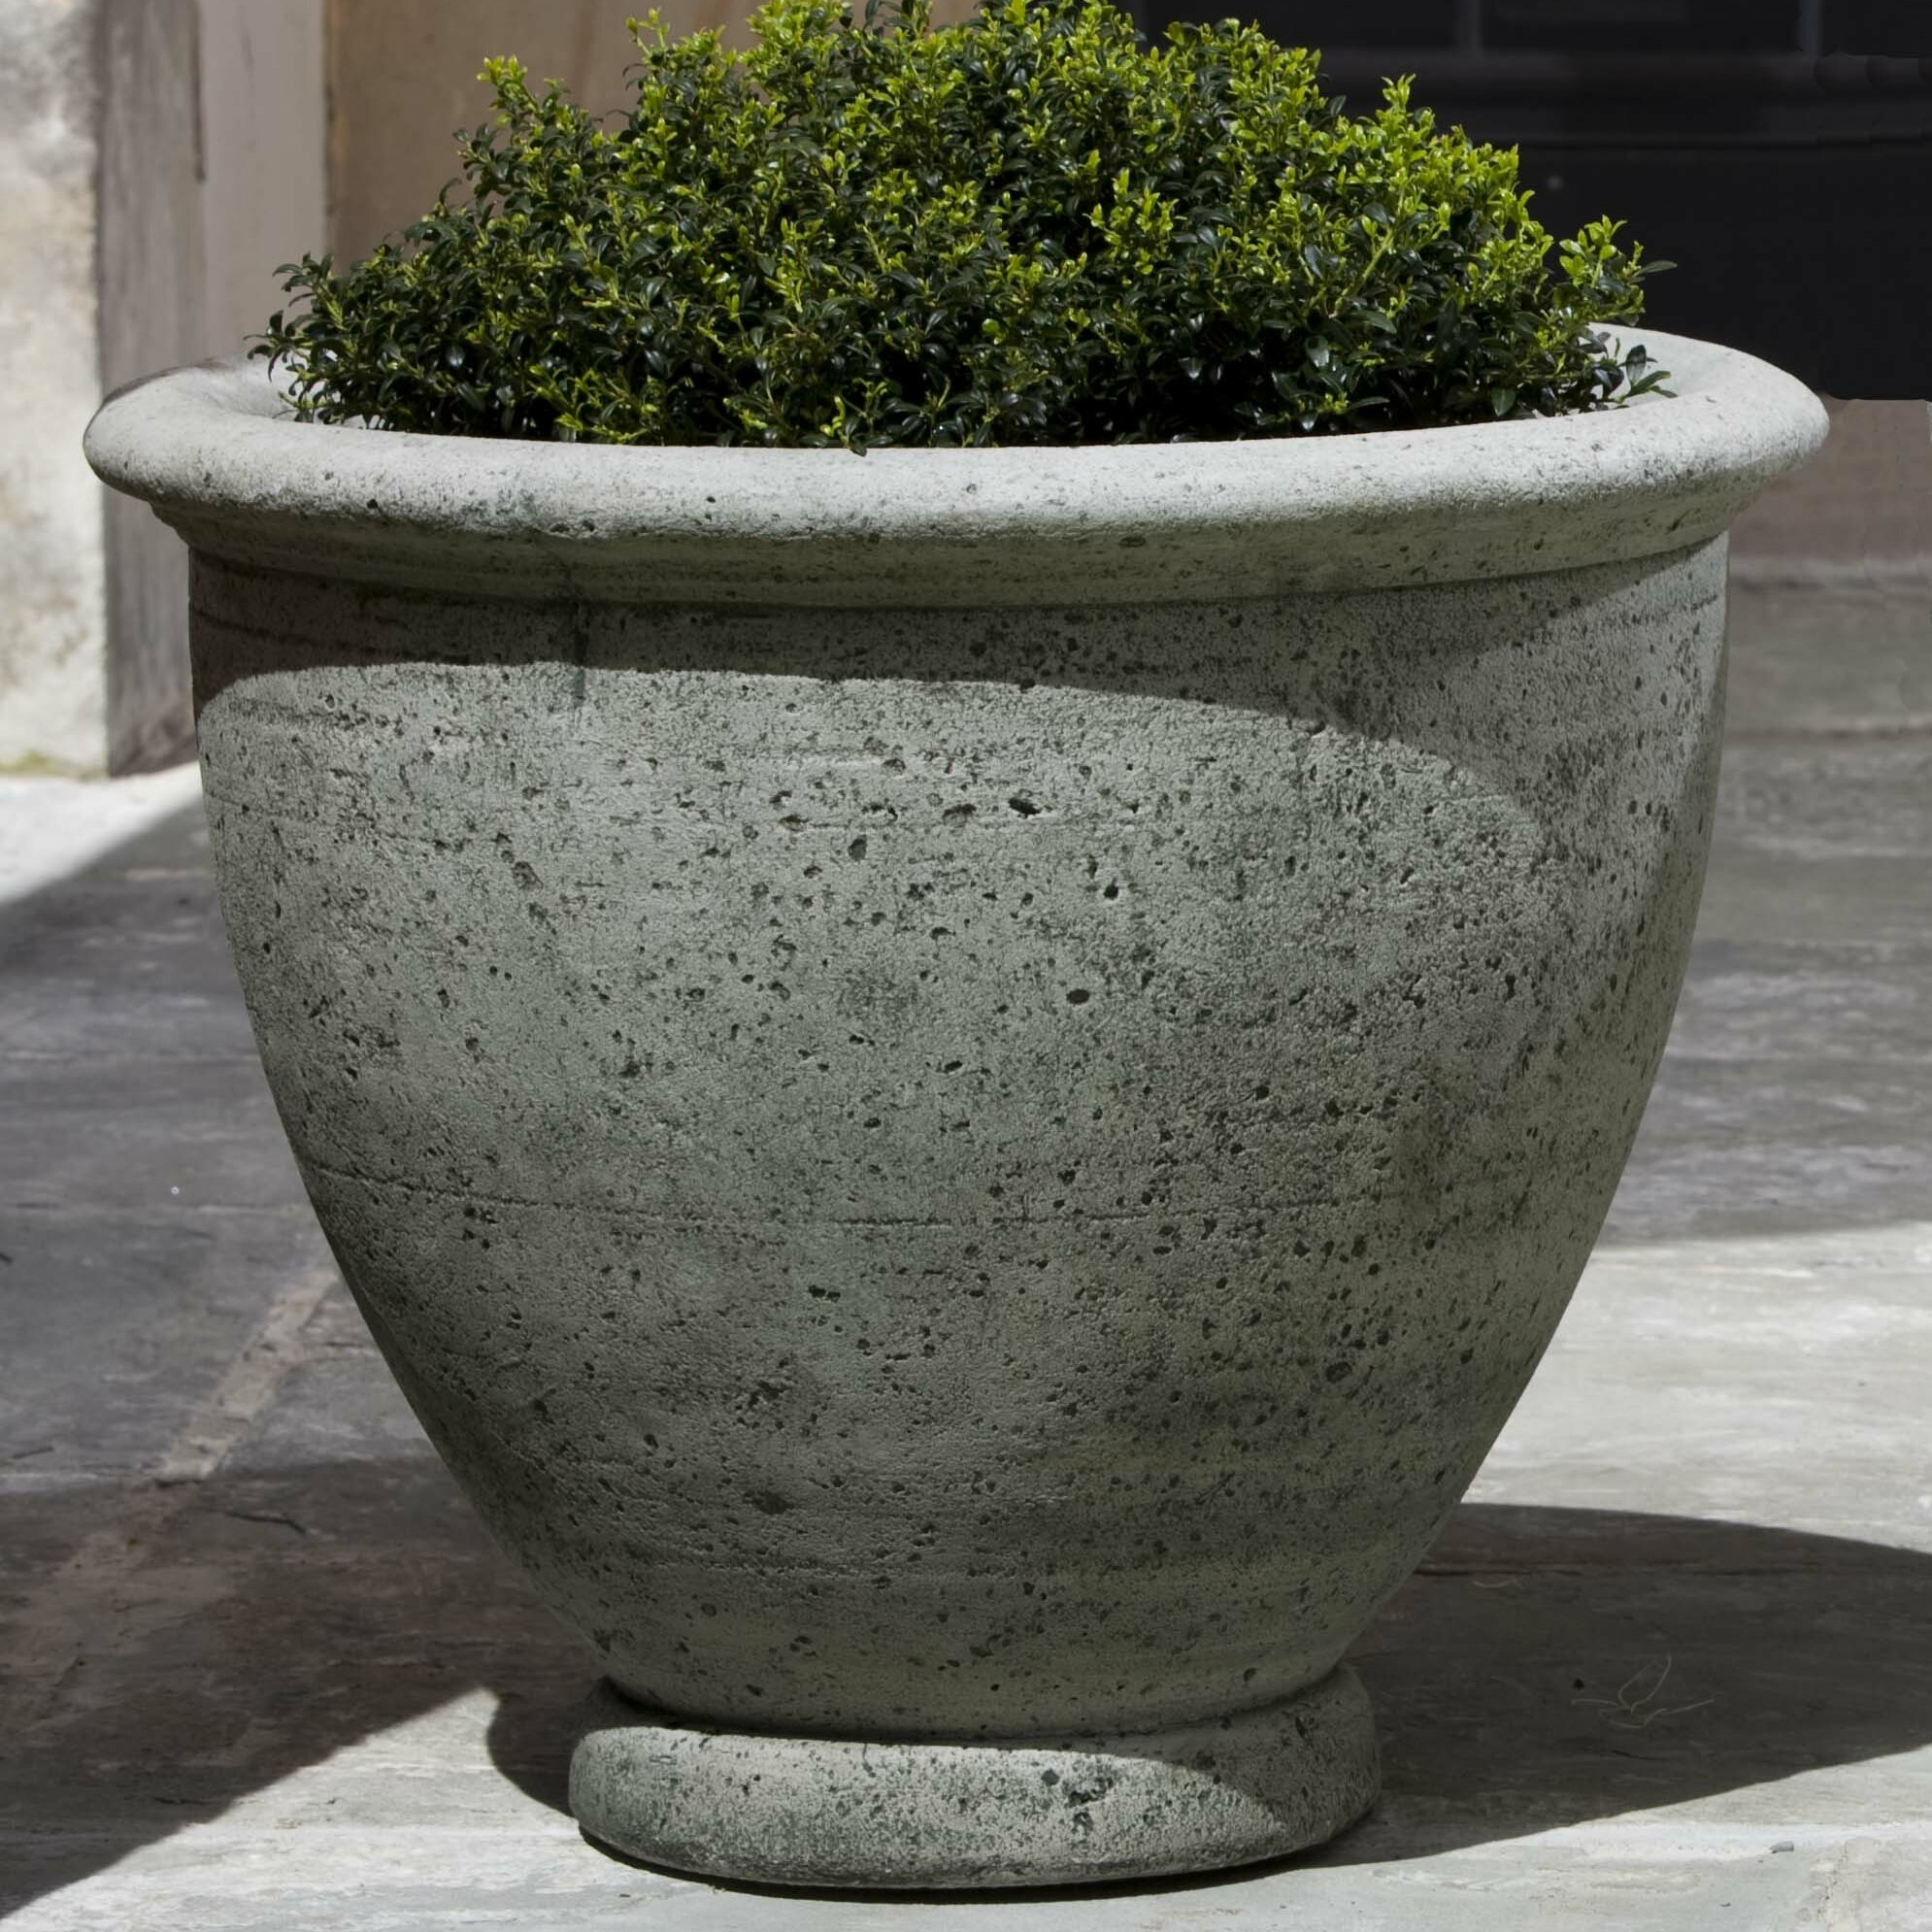 Concrete Extra Large Planters - Up to 40% Off Through 9/29 | Wayfair